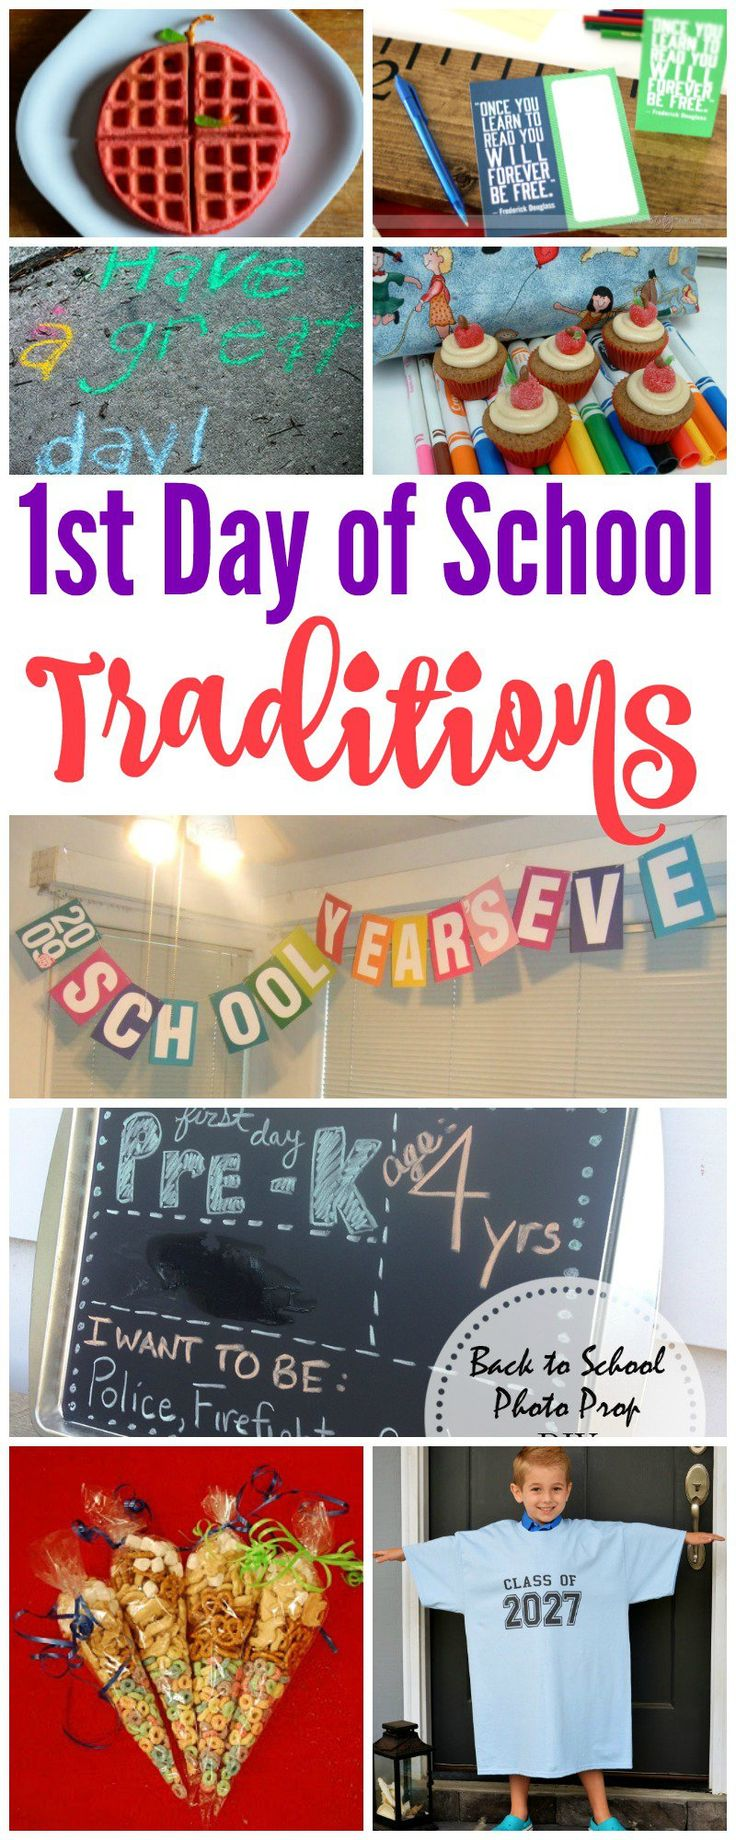 1st Day of School Activities for Kids! How to celebrate the new school year with your kids!